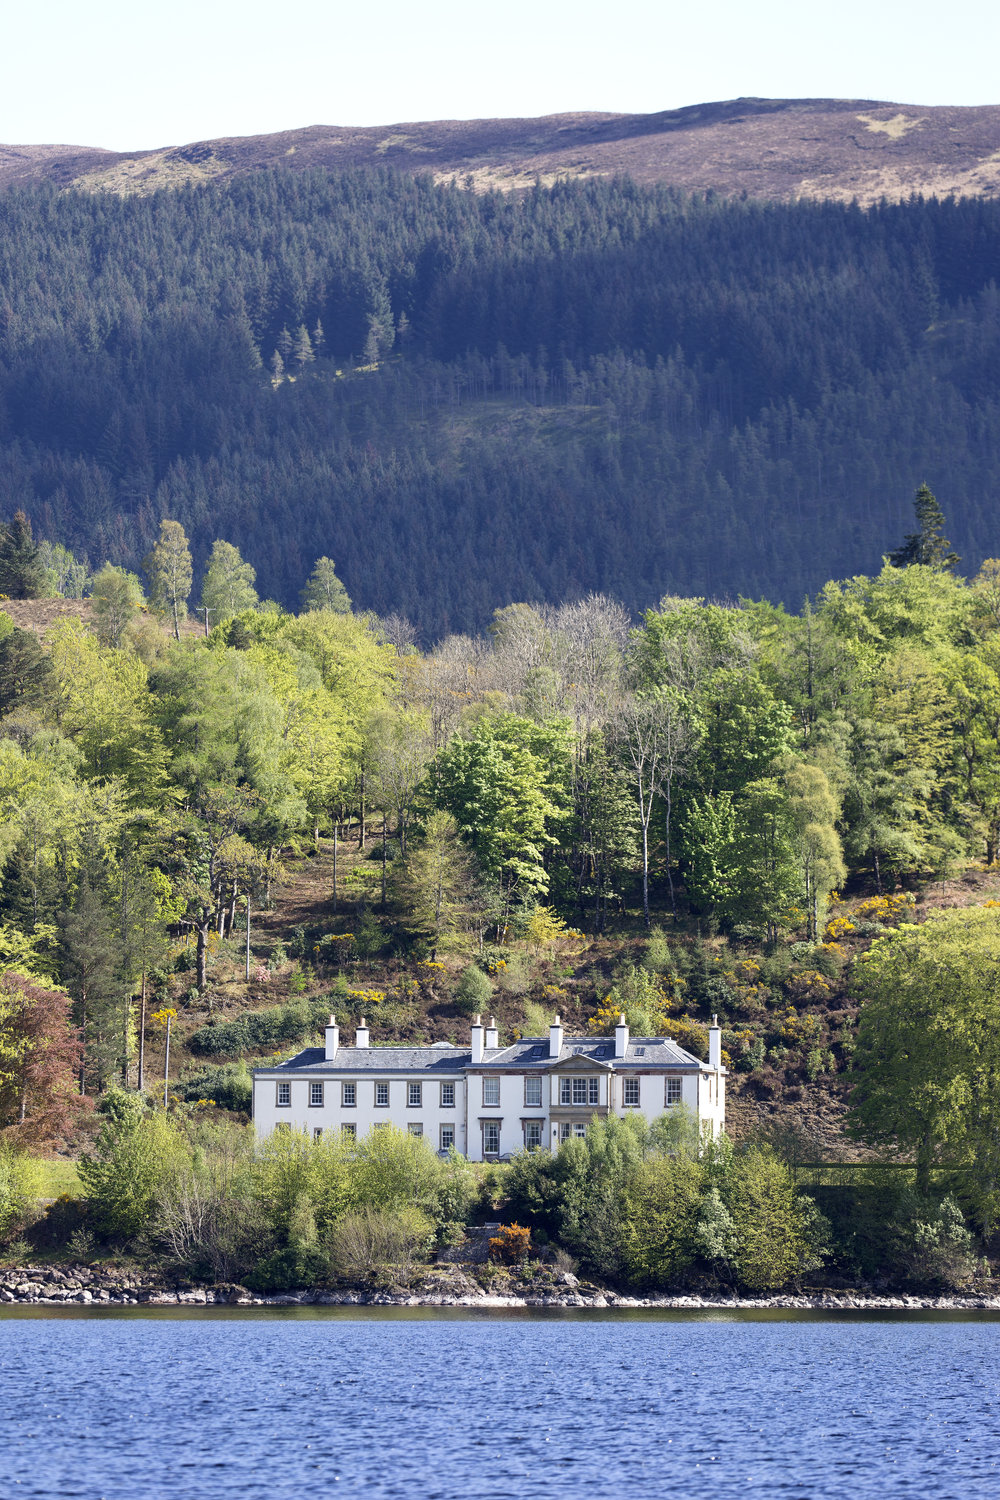 A nice small summer cottage on Loch Lochy ;)